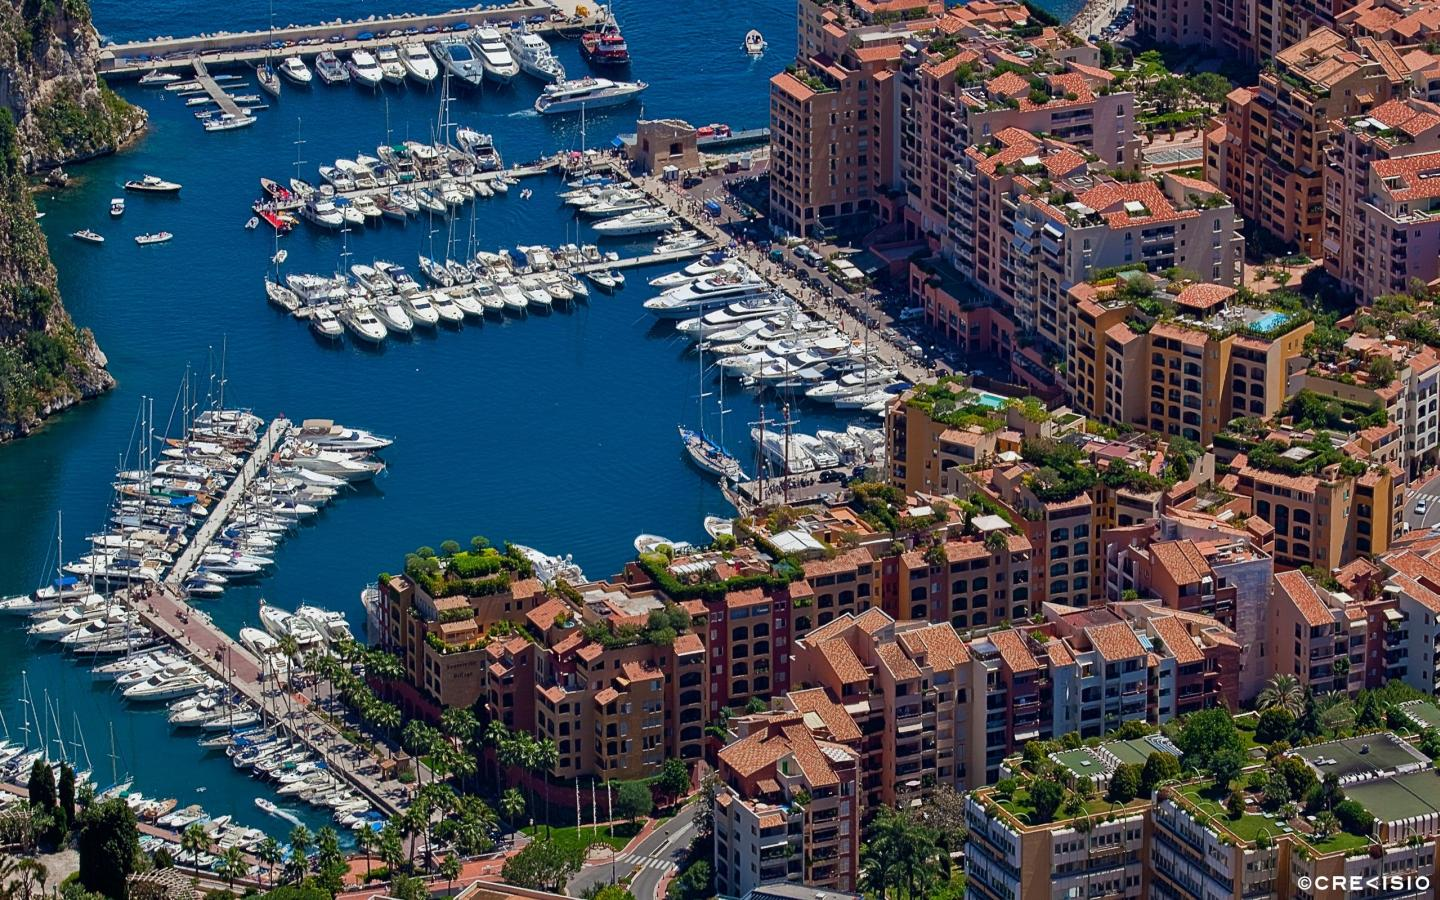 Monaco Fontvieille Cluster by Crevisio